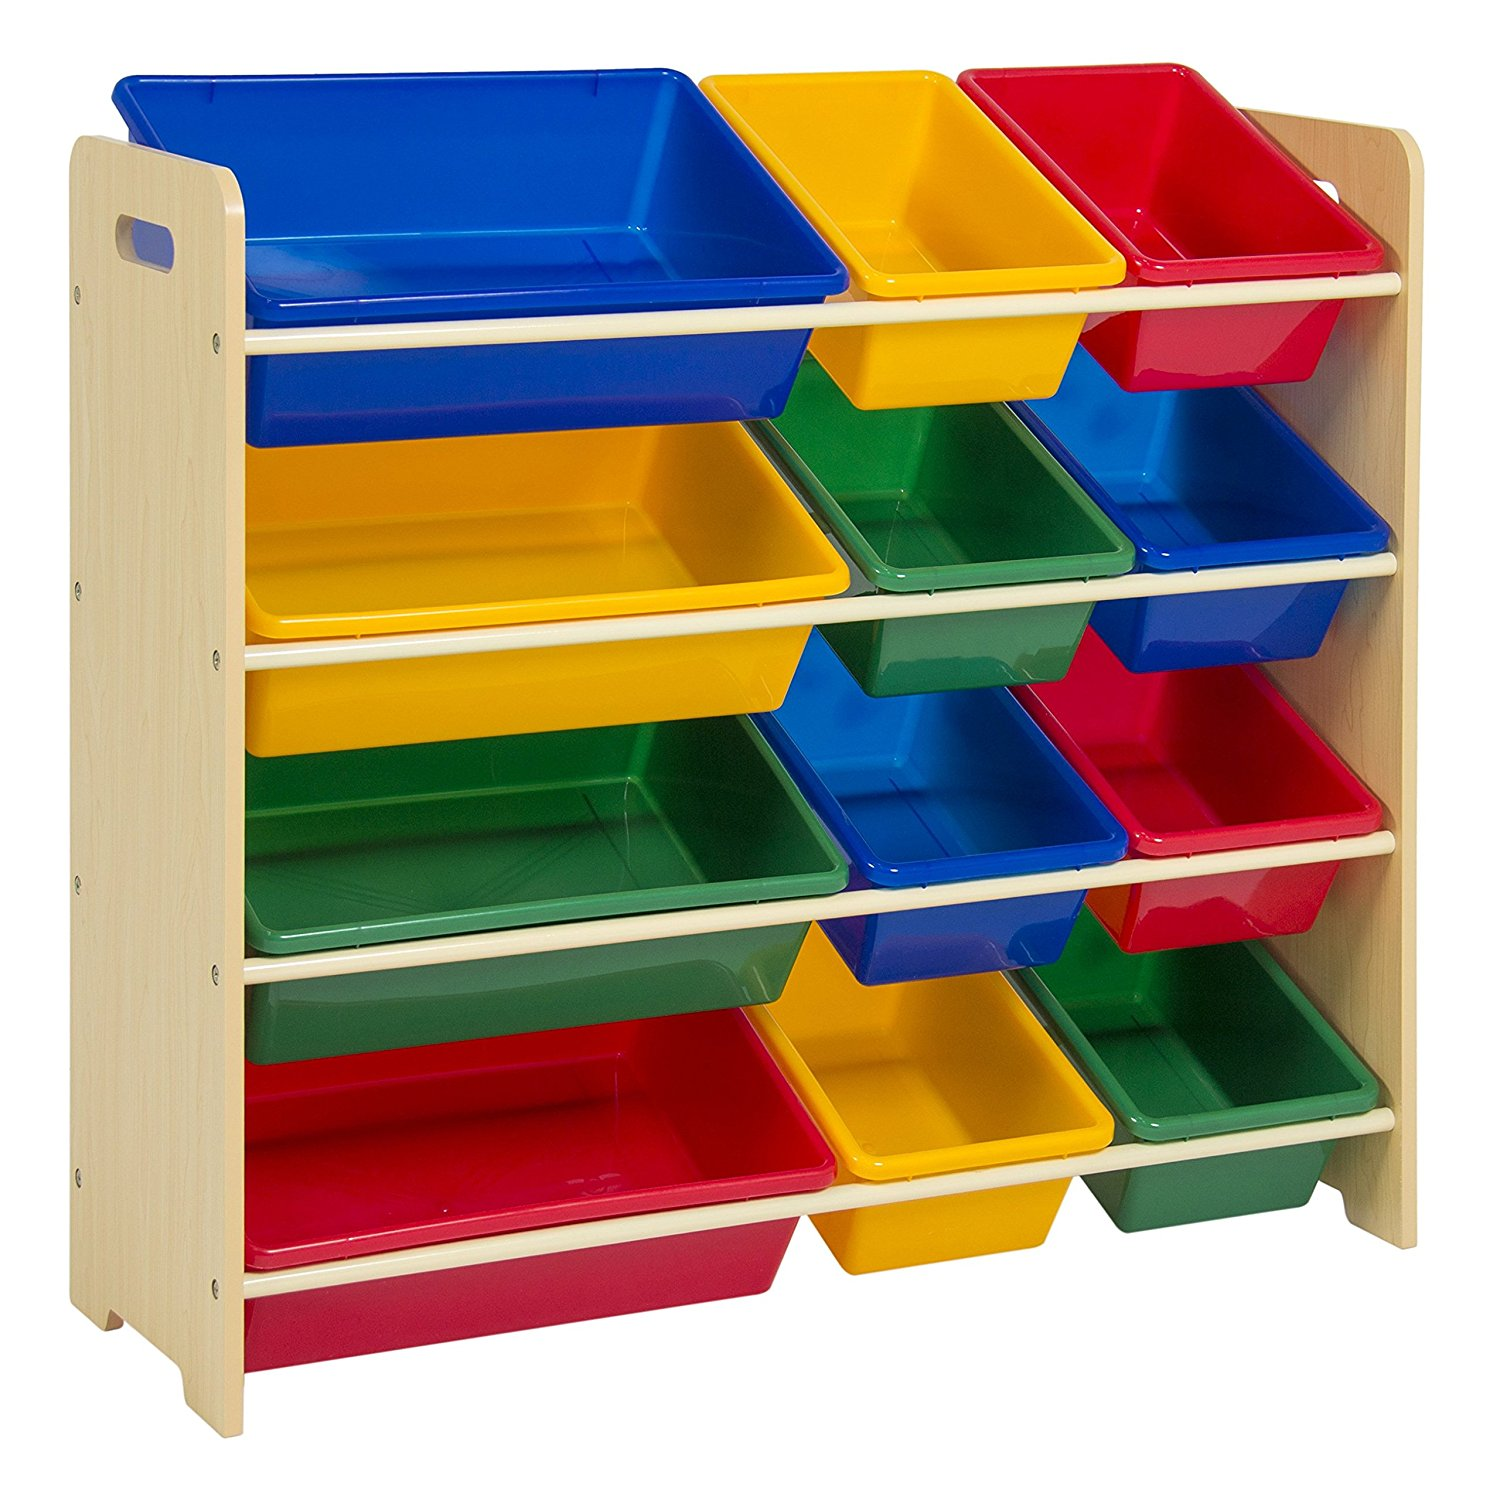 Attrayant Kids Toy Storage Amazon.com: Best Choice Products Toy Bin Organizer Kids  Childrens Storage